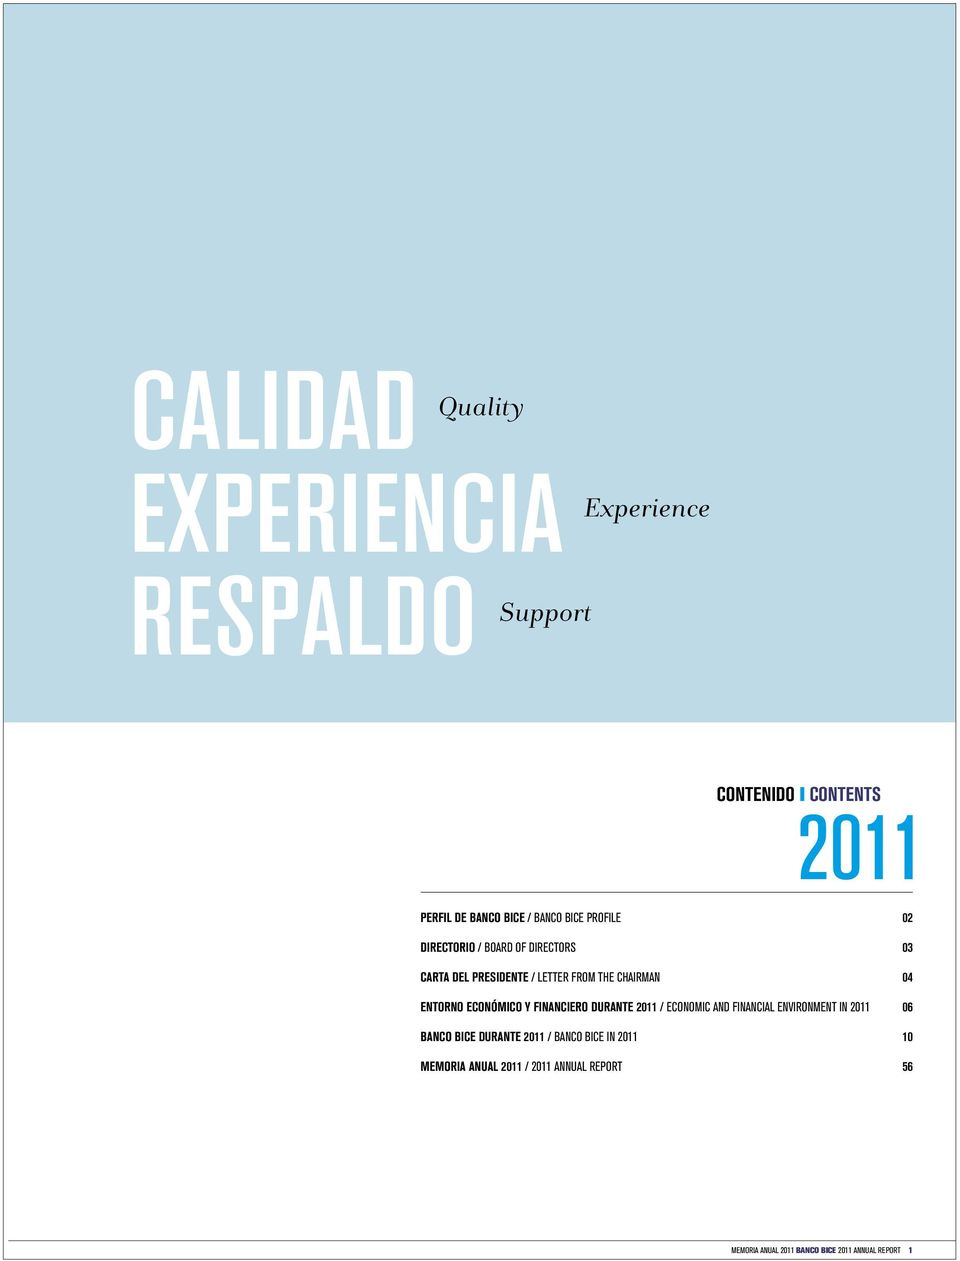 Y FINANCIERO DURANTE 2011 / ECONOMIC AND FINANCIAL ENVIRONMENT IN 2011 BANCO BICE DURANTE 2011 / BANCO BICE IN